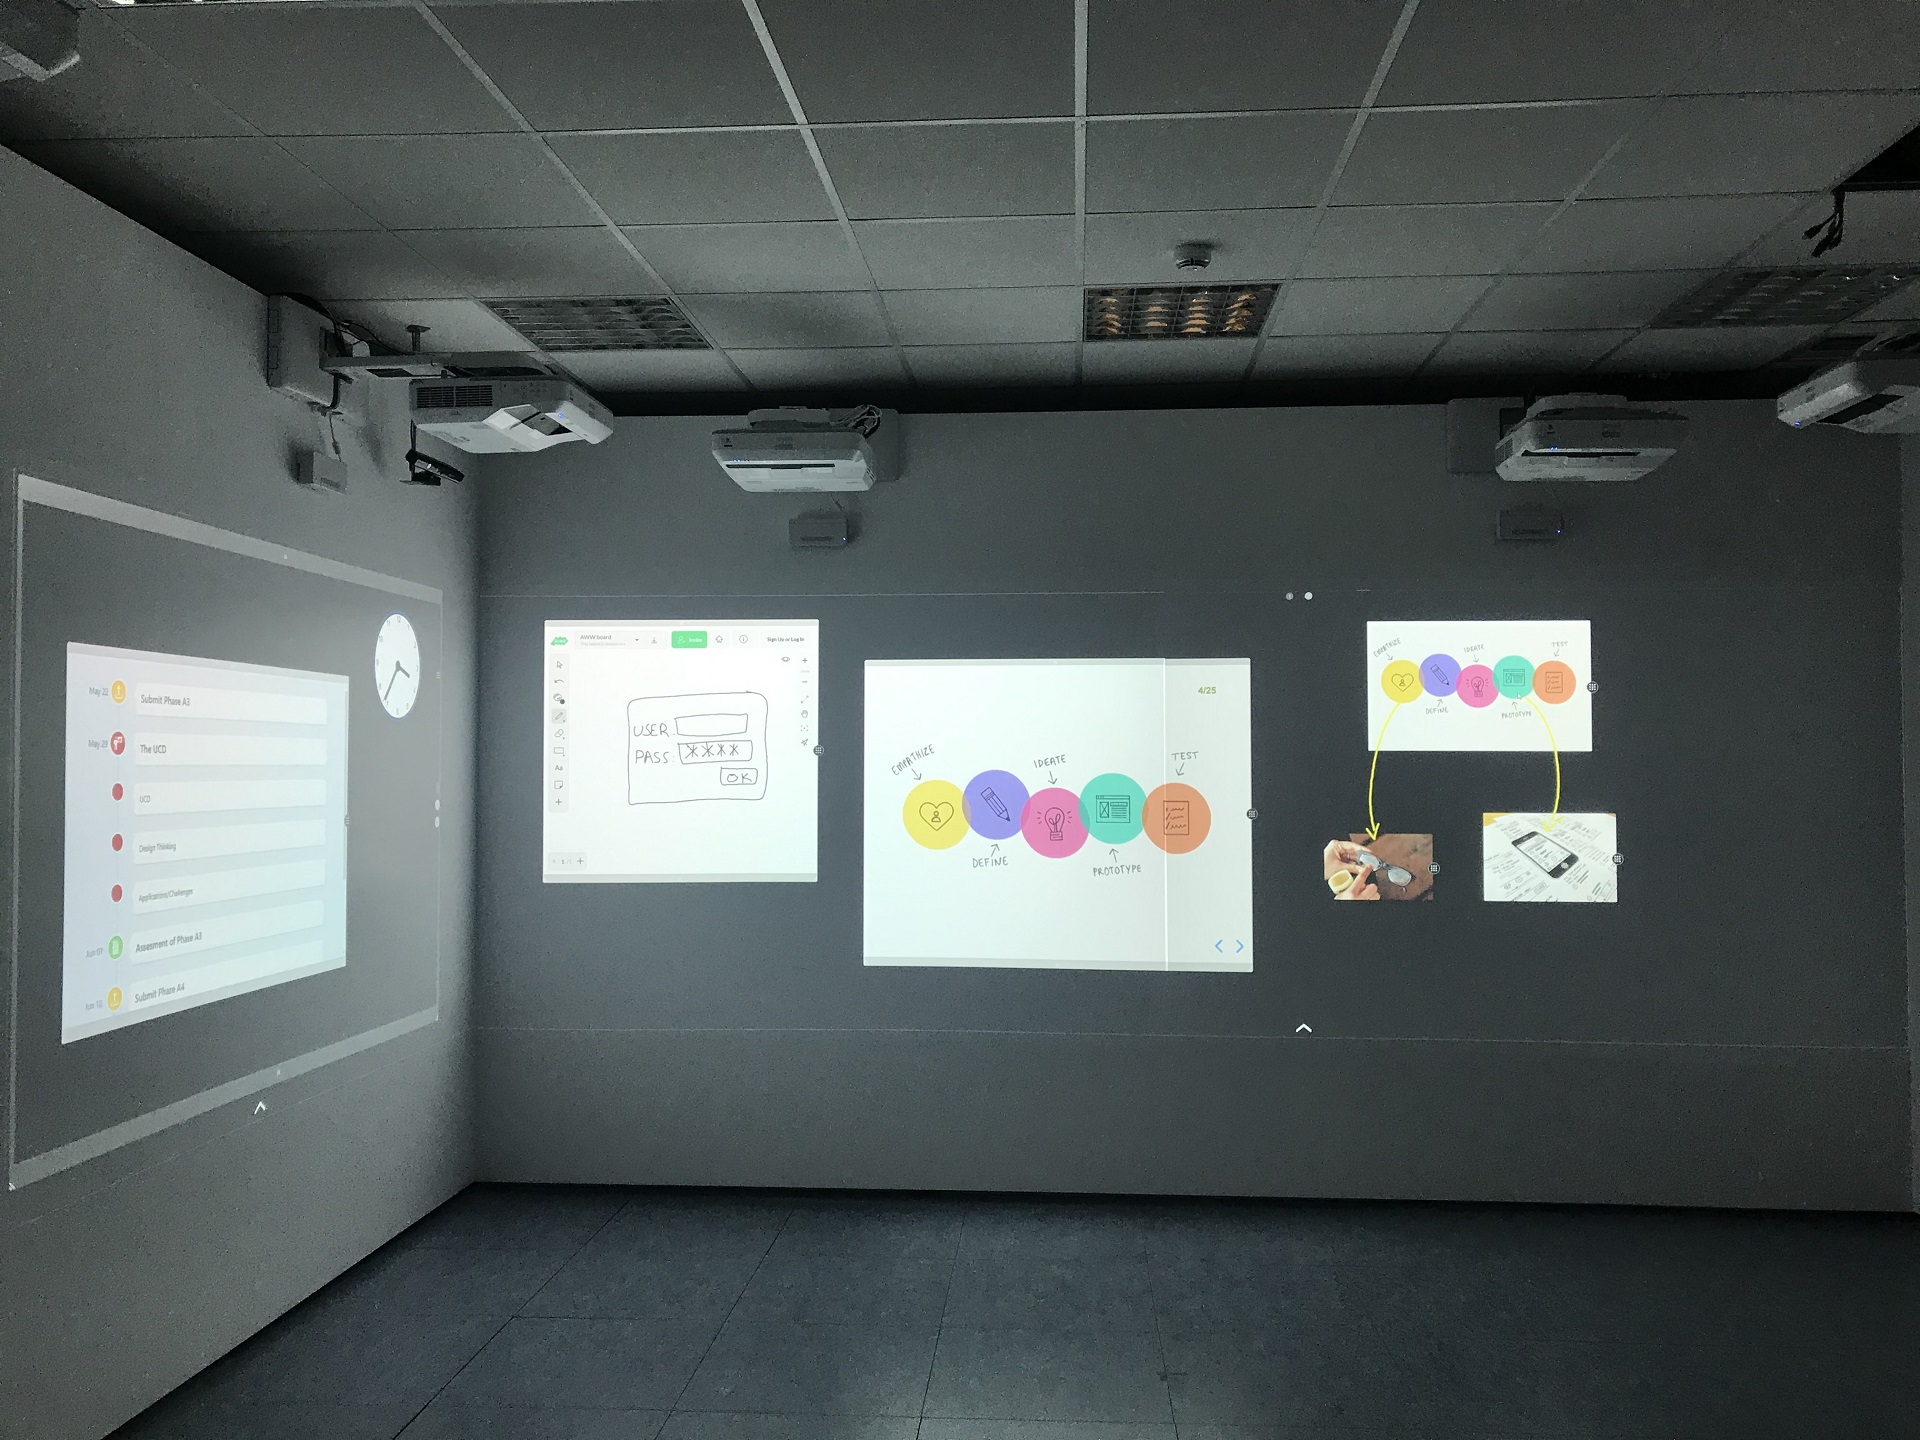 The Installation of the CognitOS Classboard